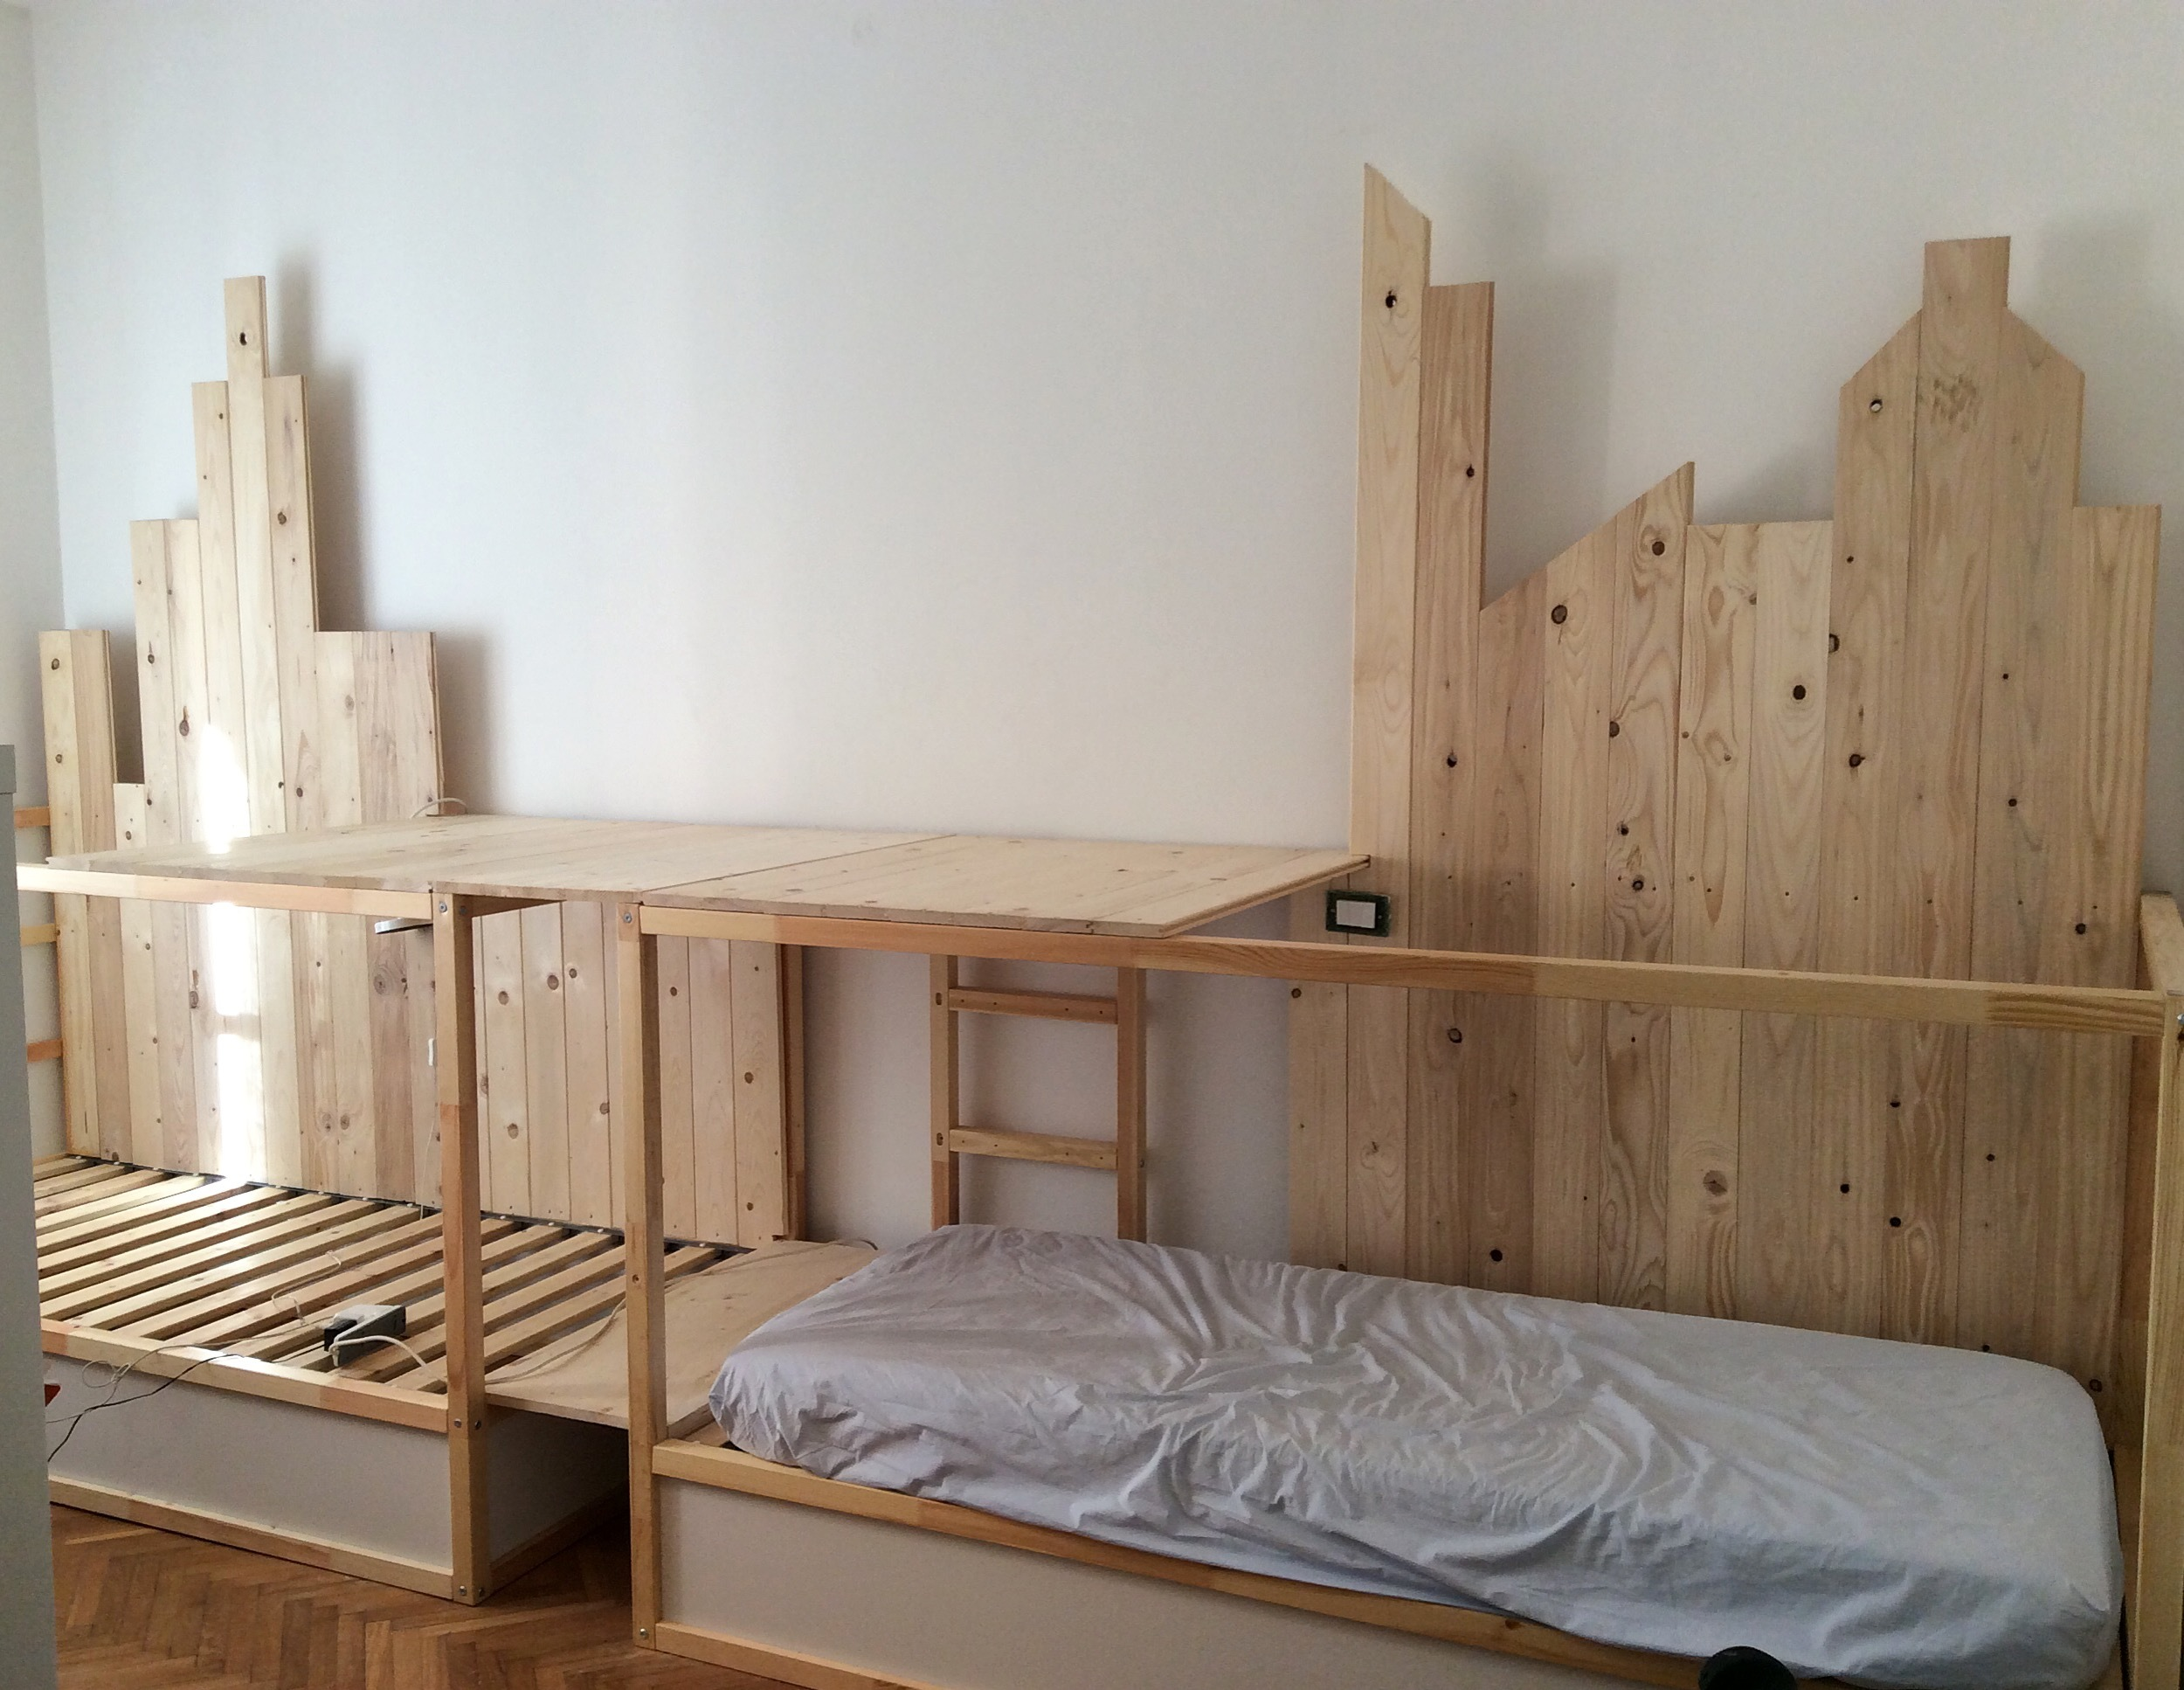 loft ikea best g beds bunk for children diy bed